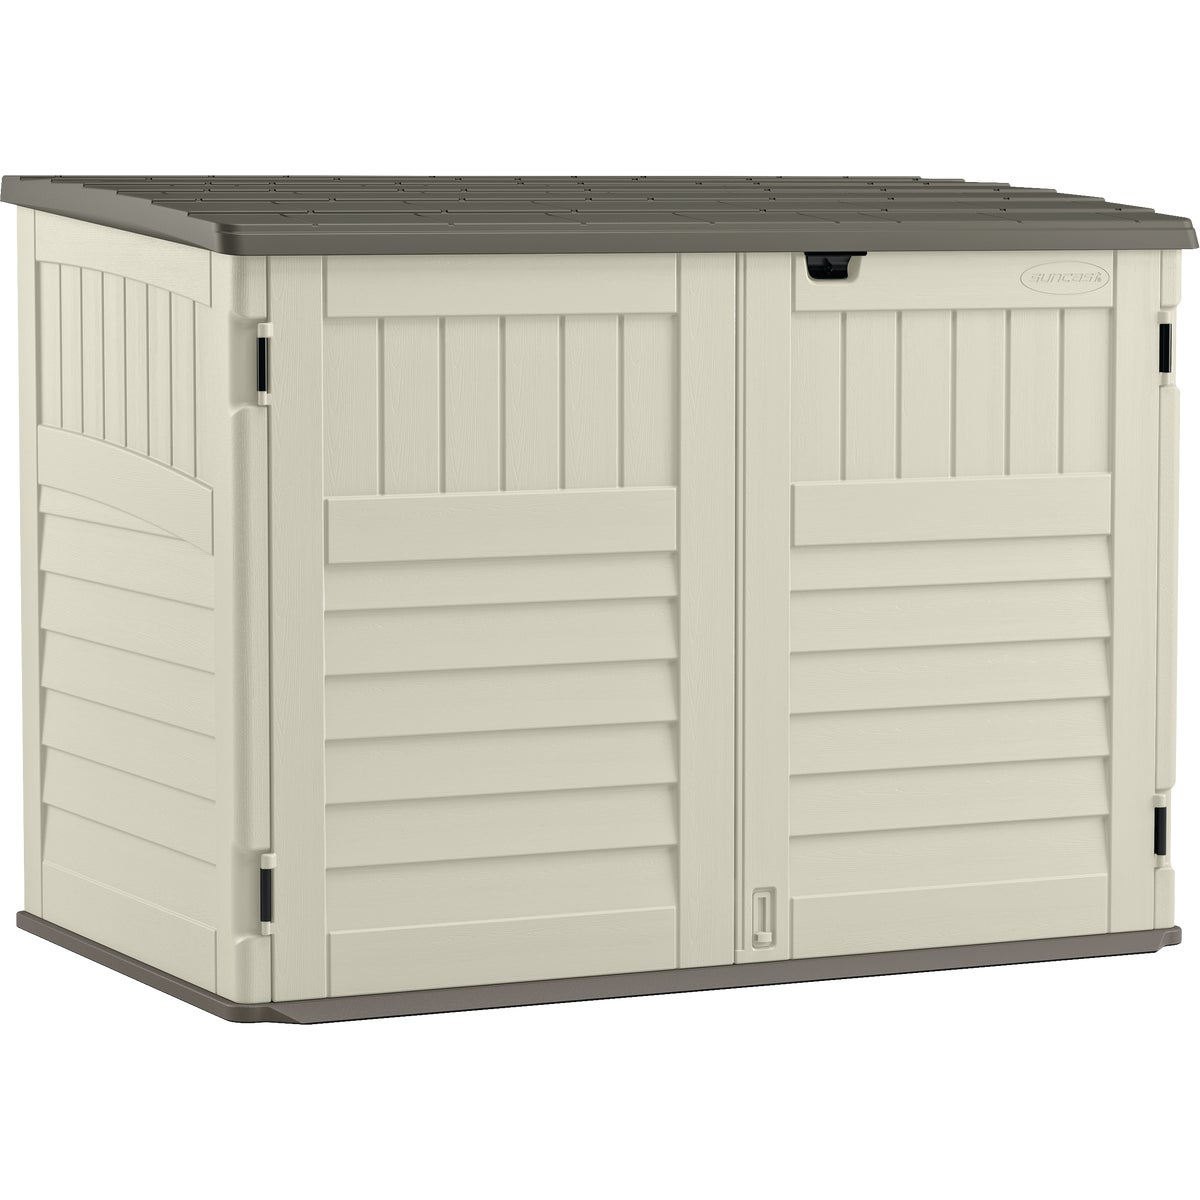 70CUFT HORIZONTAL SHED